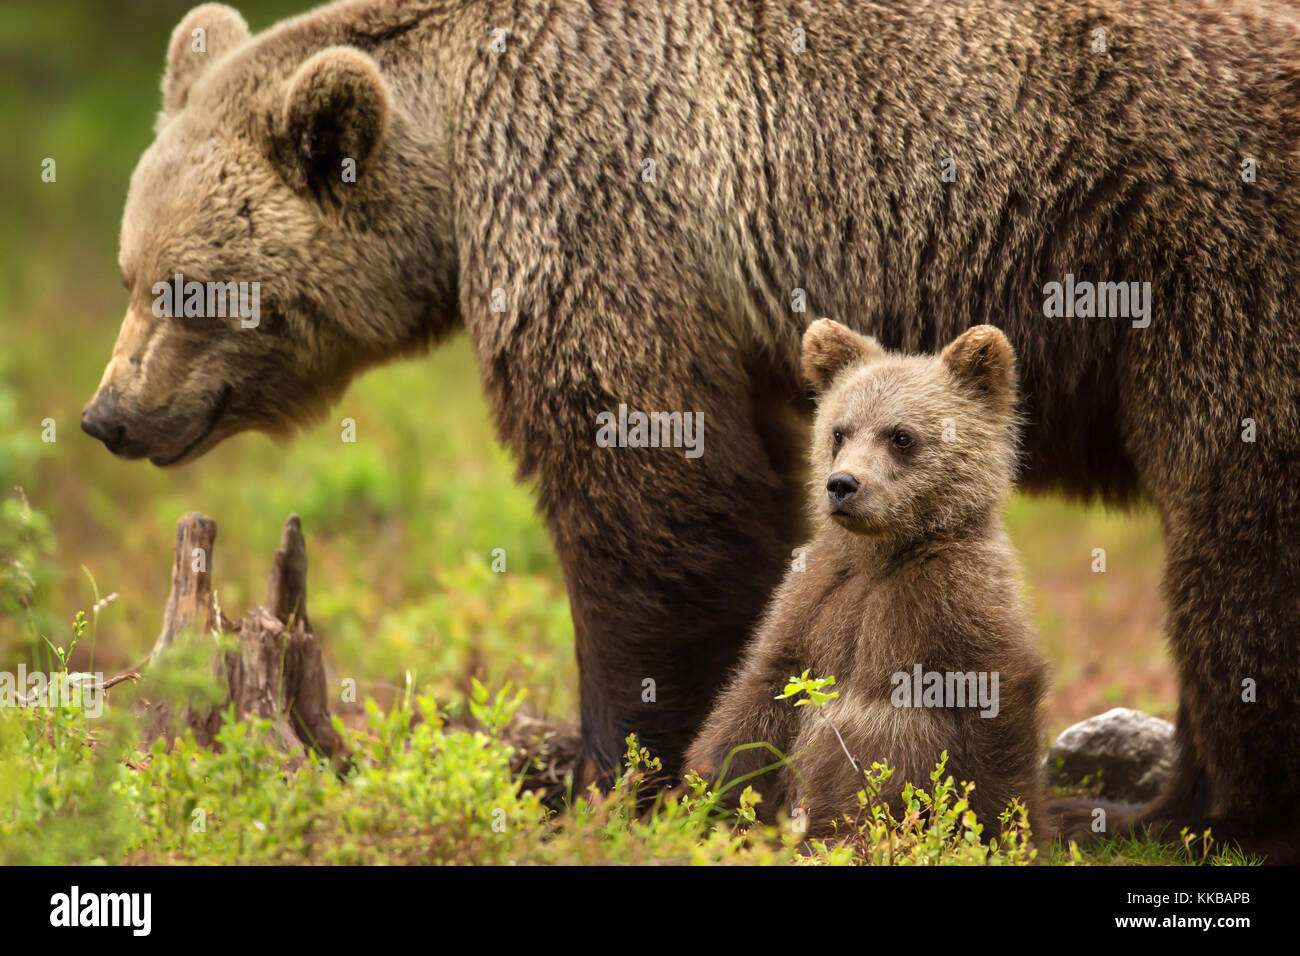 Cute little Eurasian brown bear cub sitting by the mother for safety and comfort, Finland - Stock Image